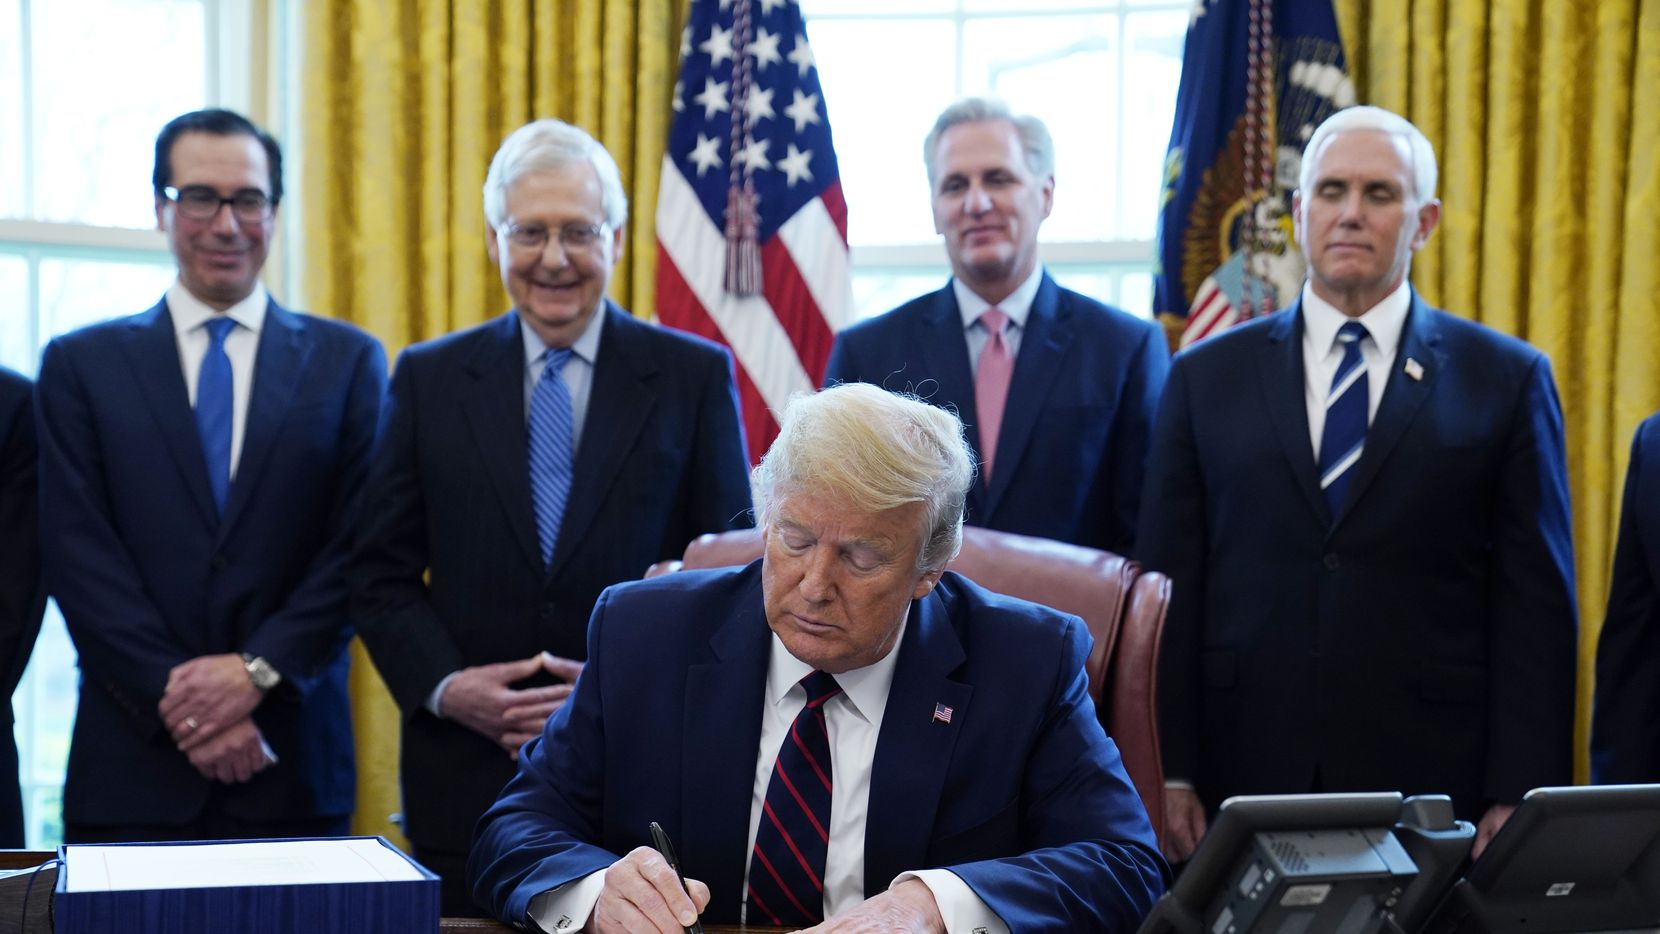 President Donald Trump signs the coronavirus stimulus relief package as from left, Treasury Secretary Steven Mnuchin, Senate Majority Leader Mitch McConnell of Ky., House Minority Kevin McCarthy of Calif., and Vice President Mike Pence, look on. Direct deposited stimulus payments began this week.